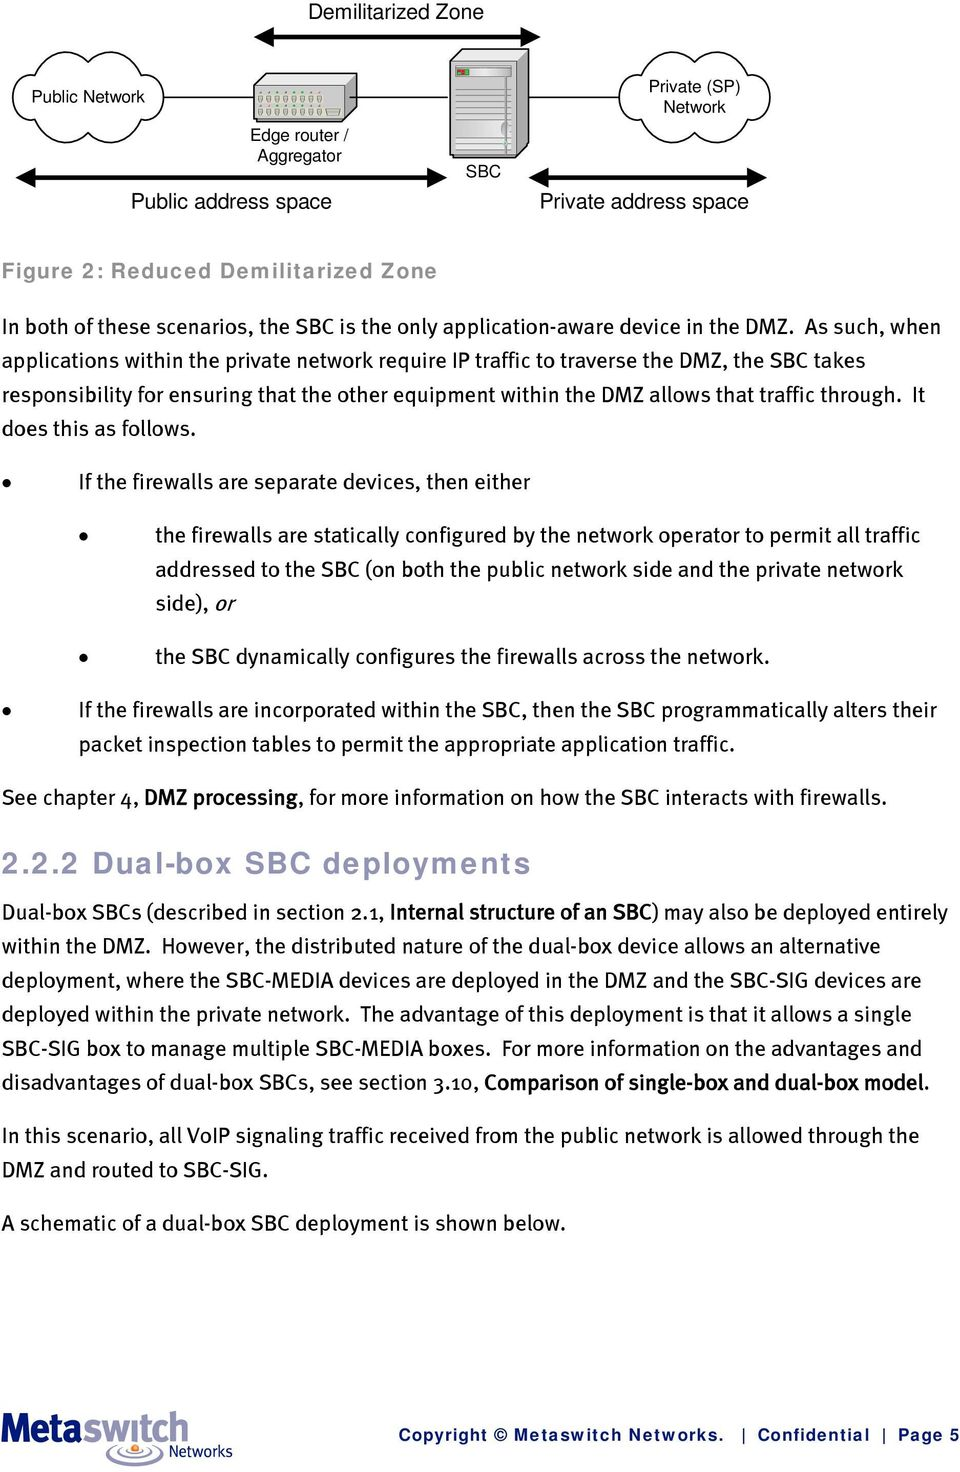 As such, when applications within the private network require IP traffic to traverse the DMZ, the SBC takes responsibility for ensuring that the other equipment within the DMZ allows that traffic